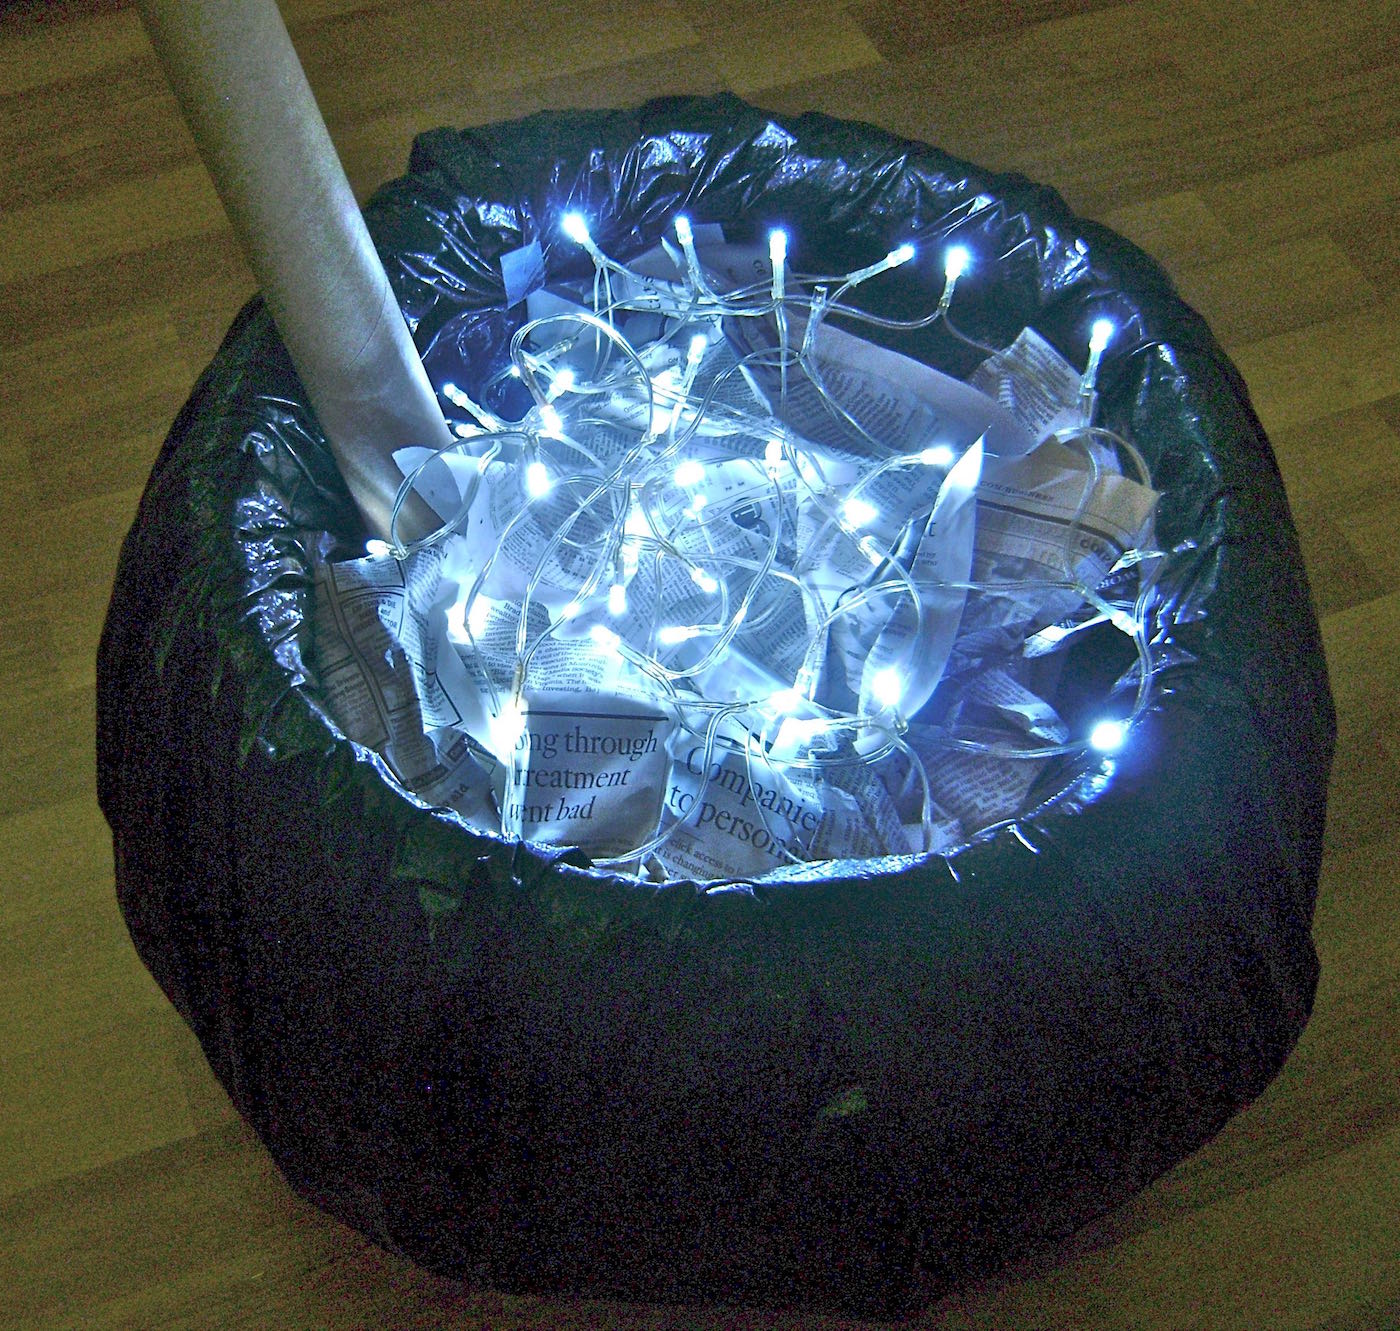 step 14 - Fill the cauldron with crumpled newspaper almost to the top of the container.  Scatter the lights about.